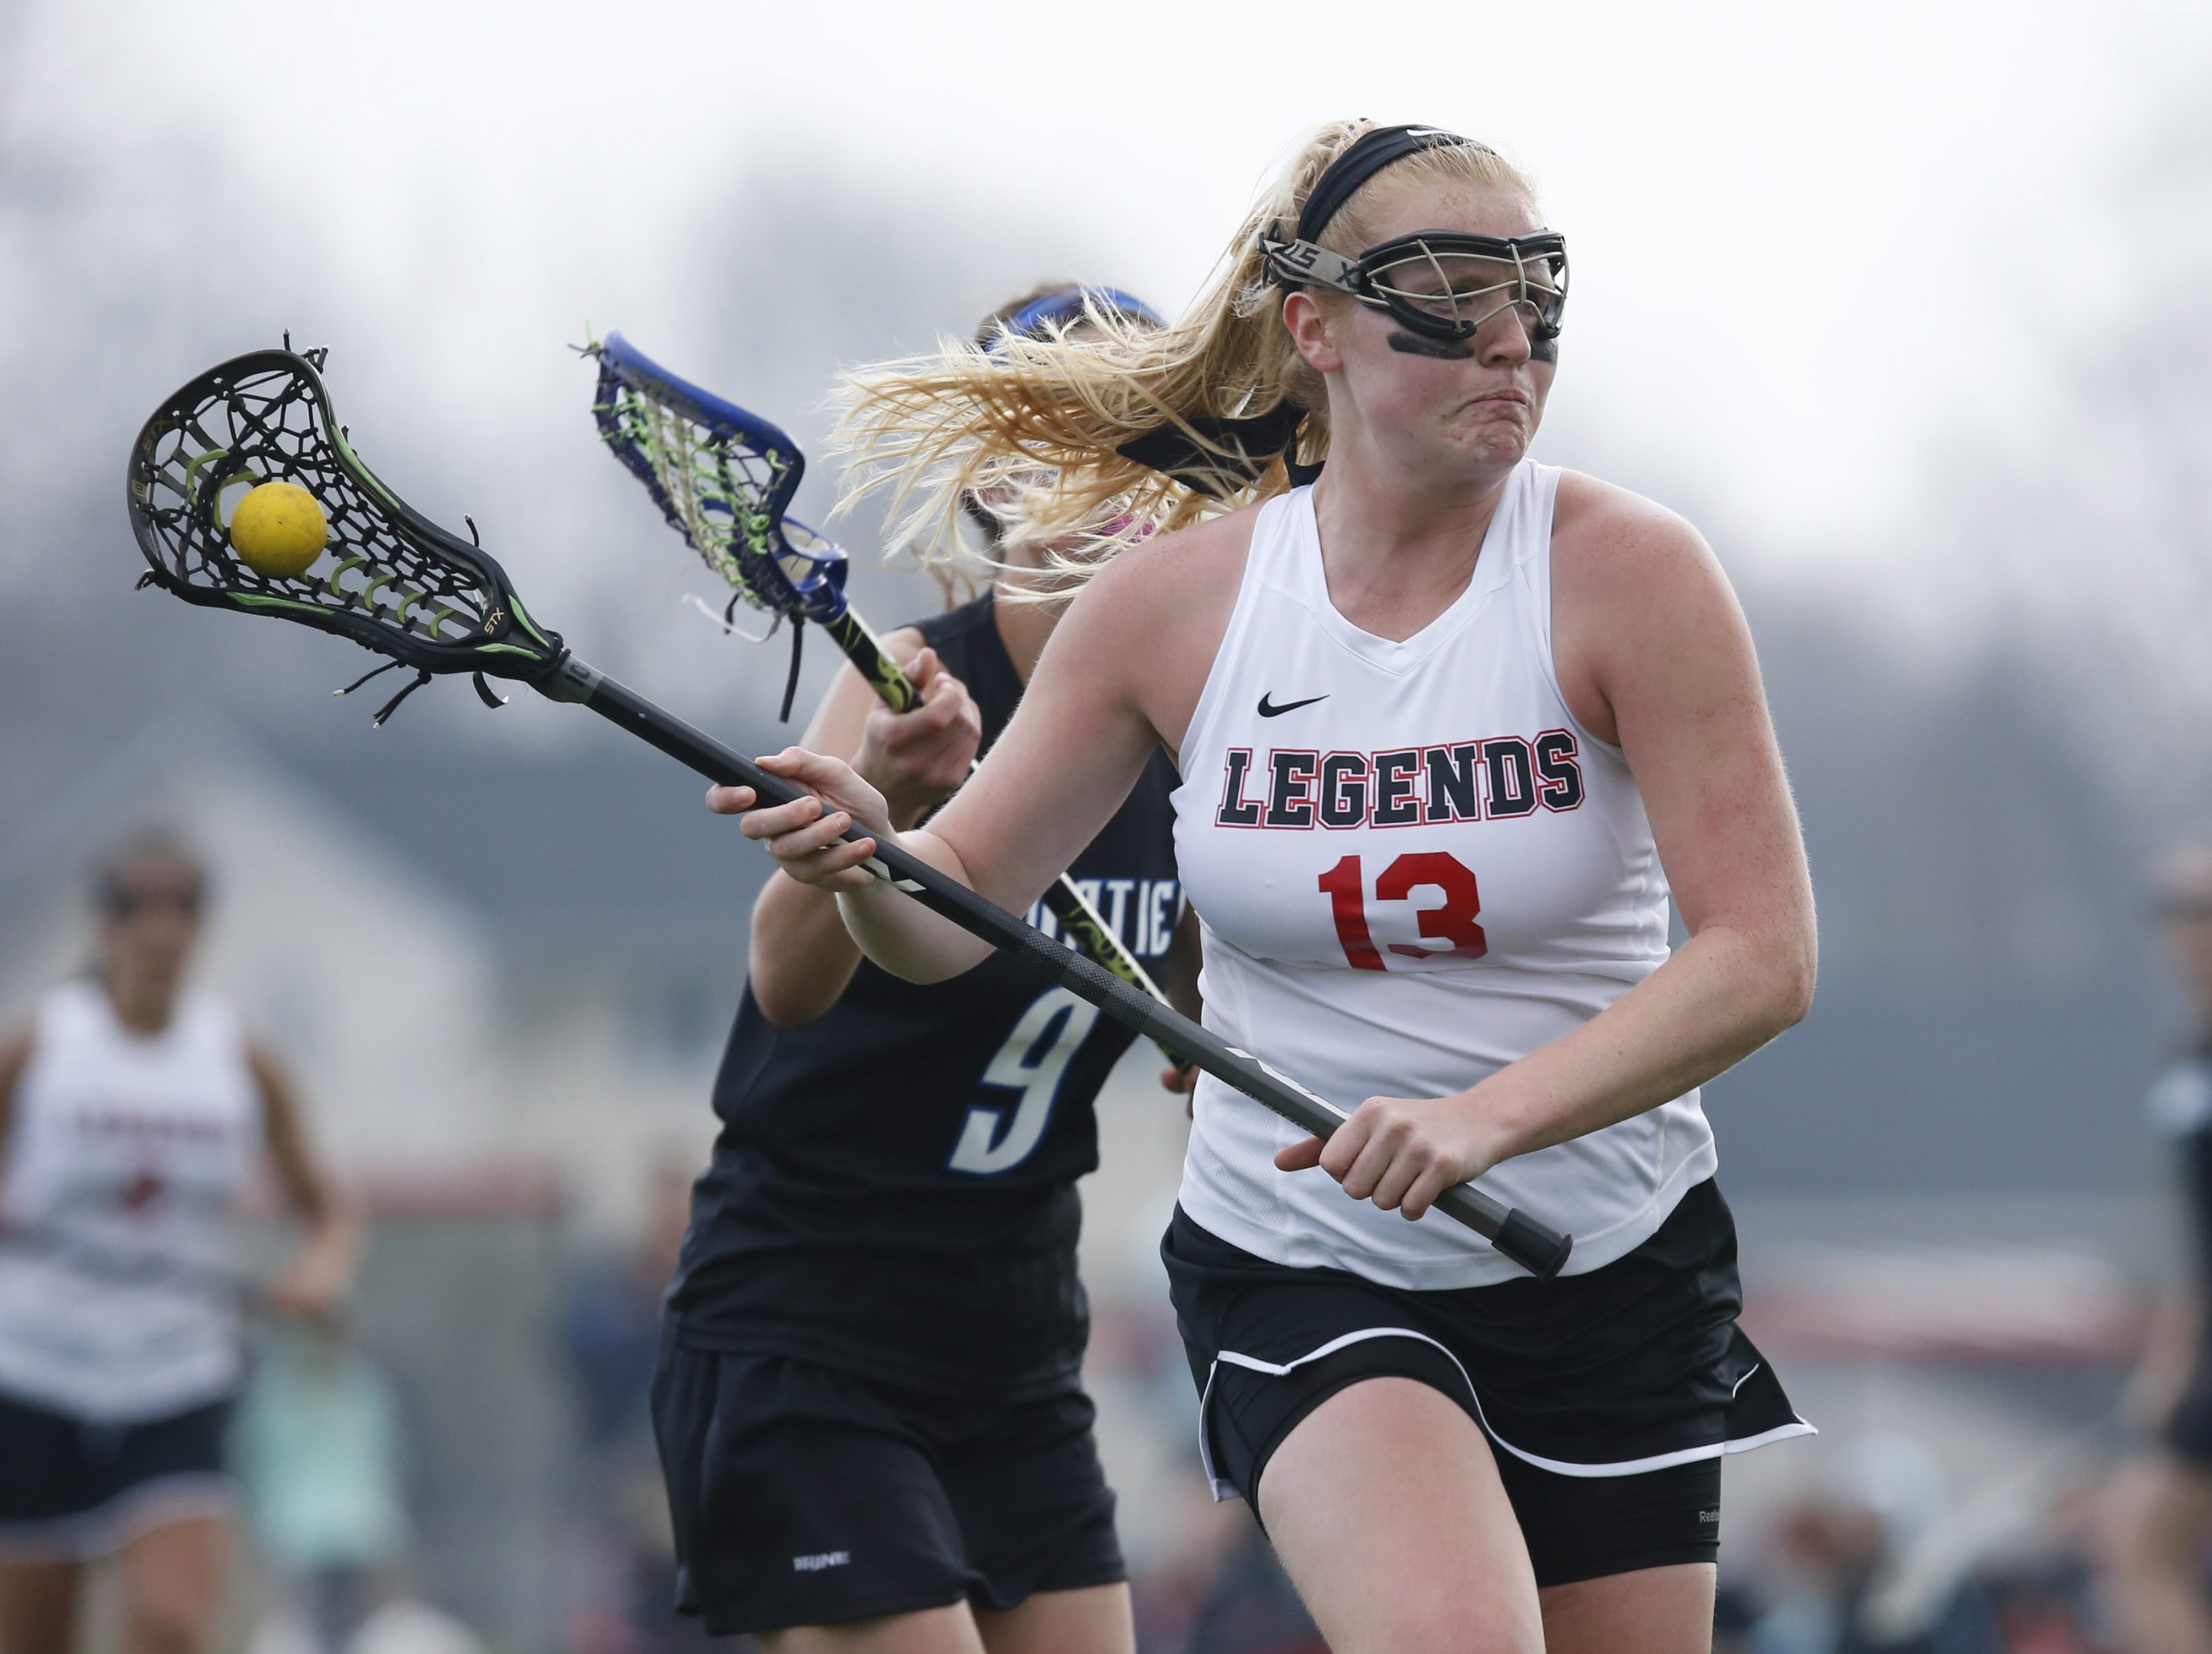 Lancaster's Hannah Nagowski, who had seven goals in a game this year, shoots on the Frontier net last Friday.